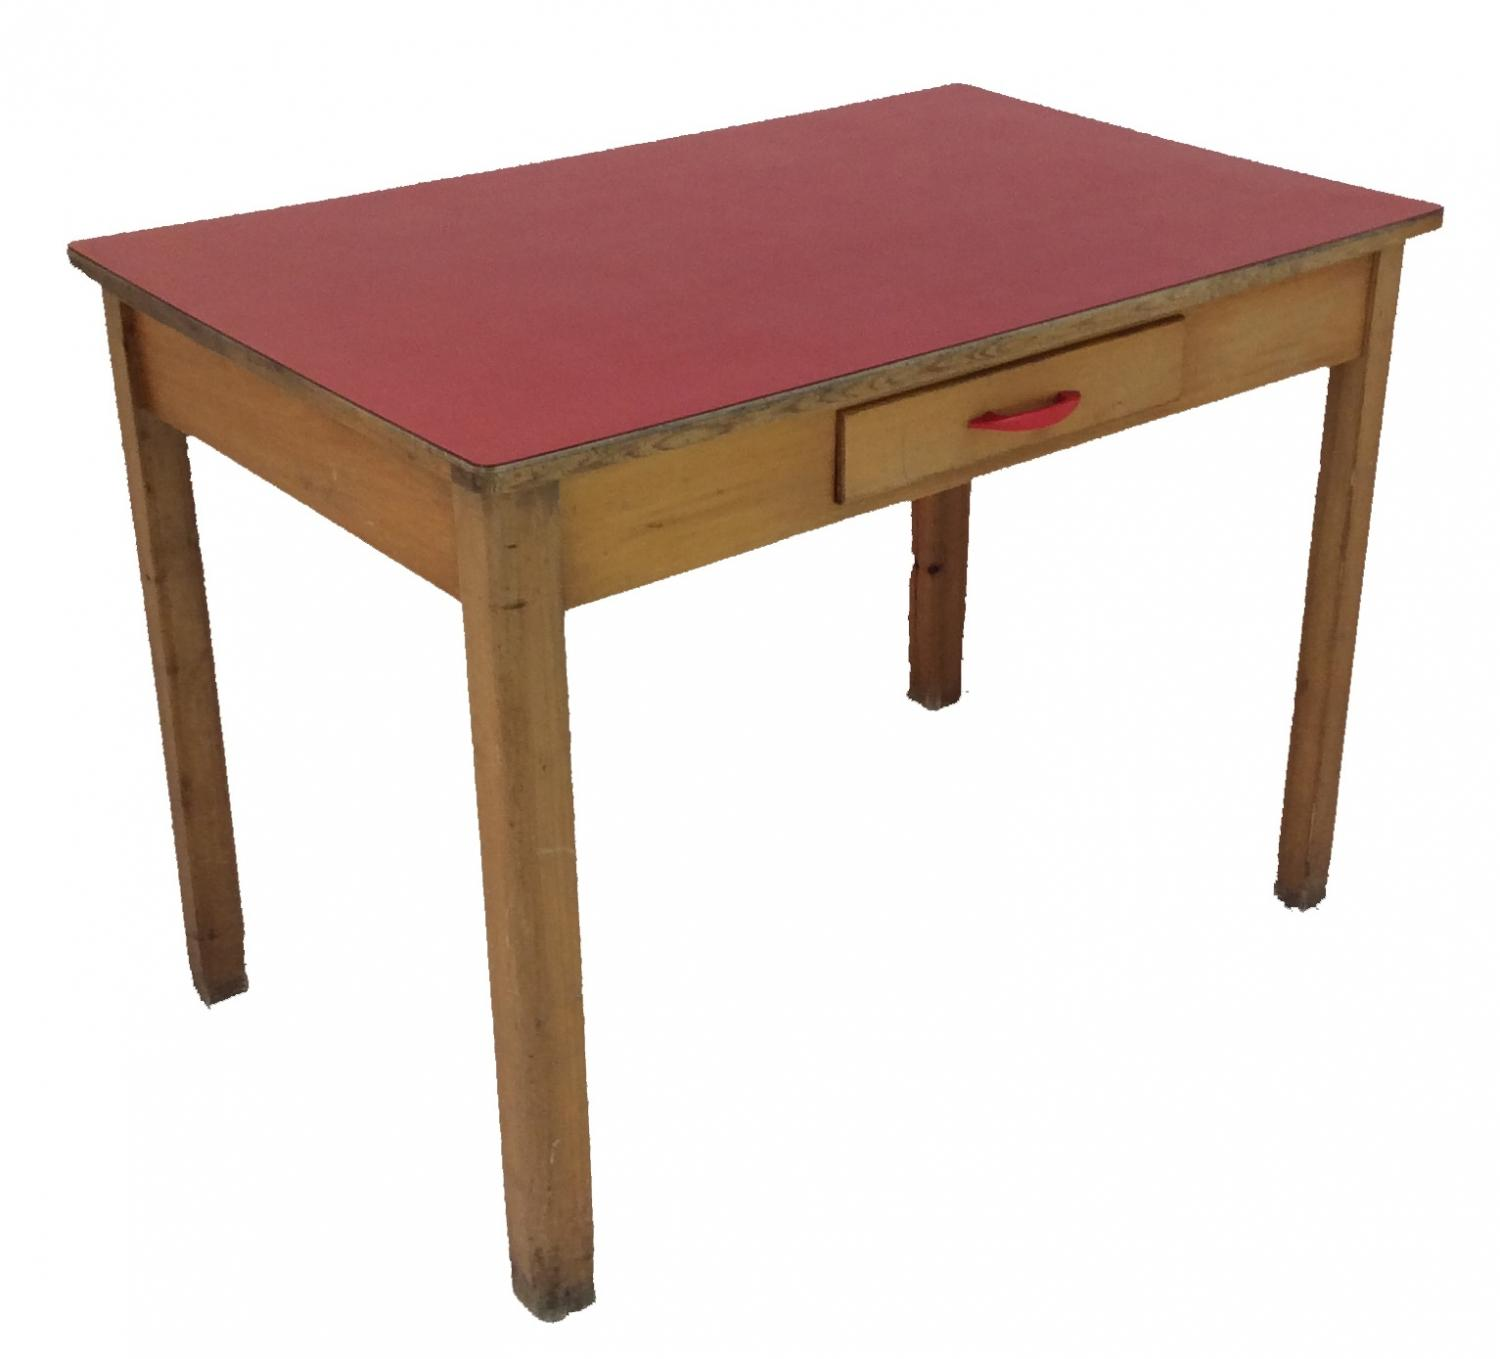 Retro Red Formica Table In SOLD RECENTLY